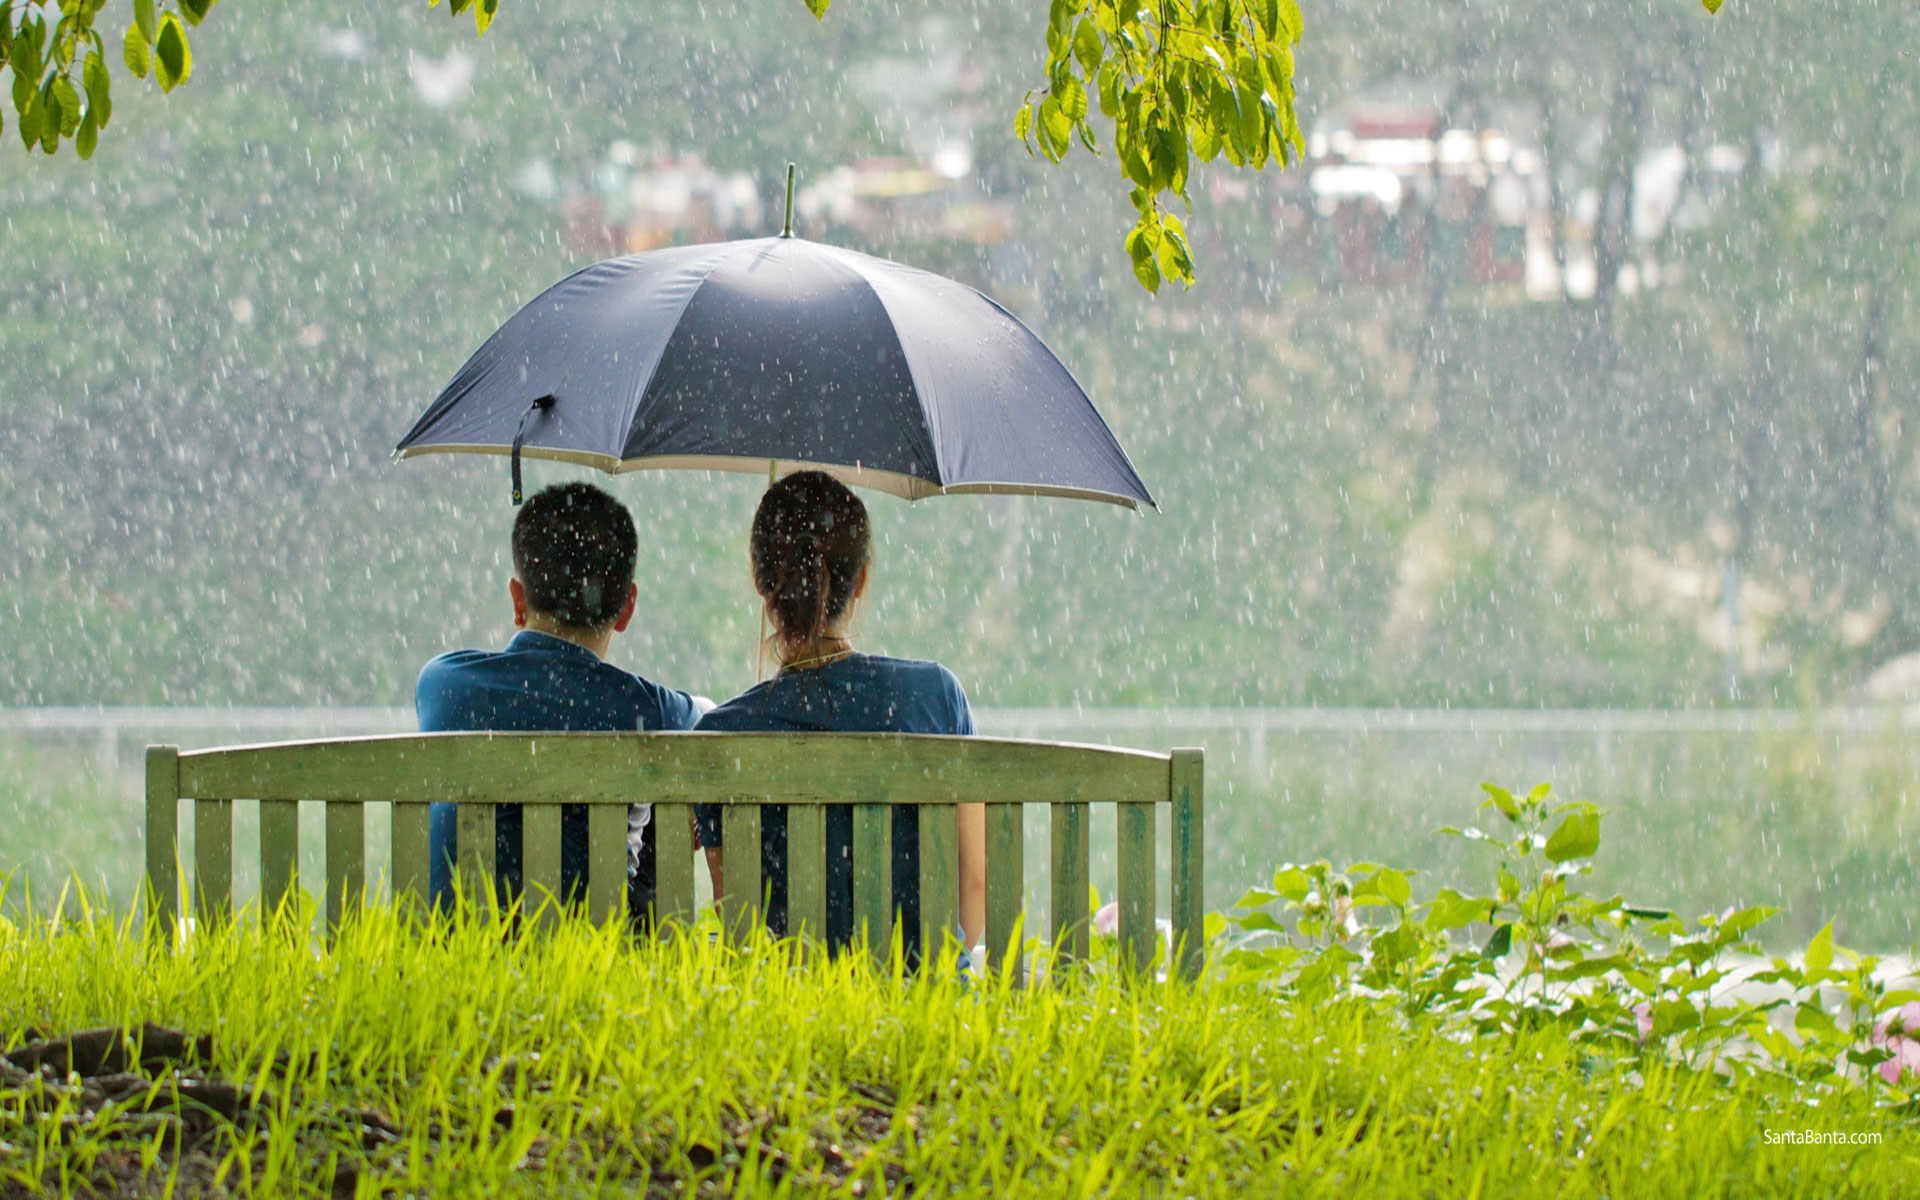 Romantic Couple Sitting In Park While Raining